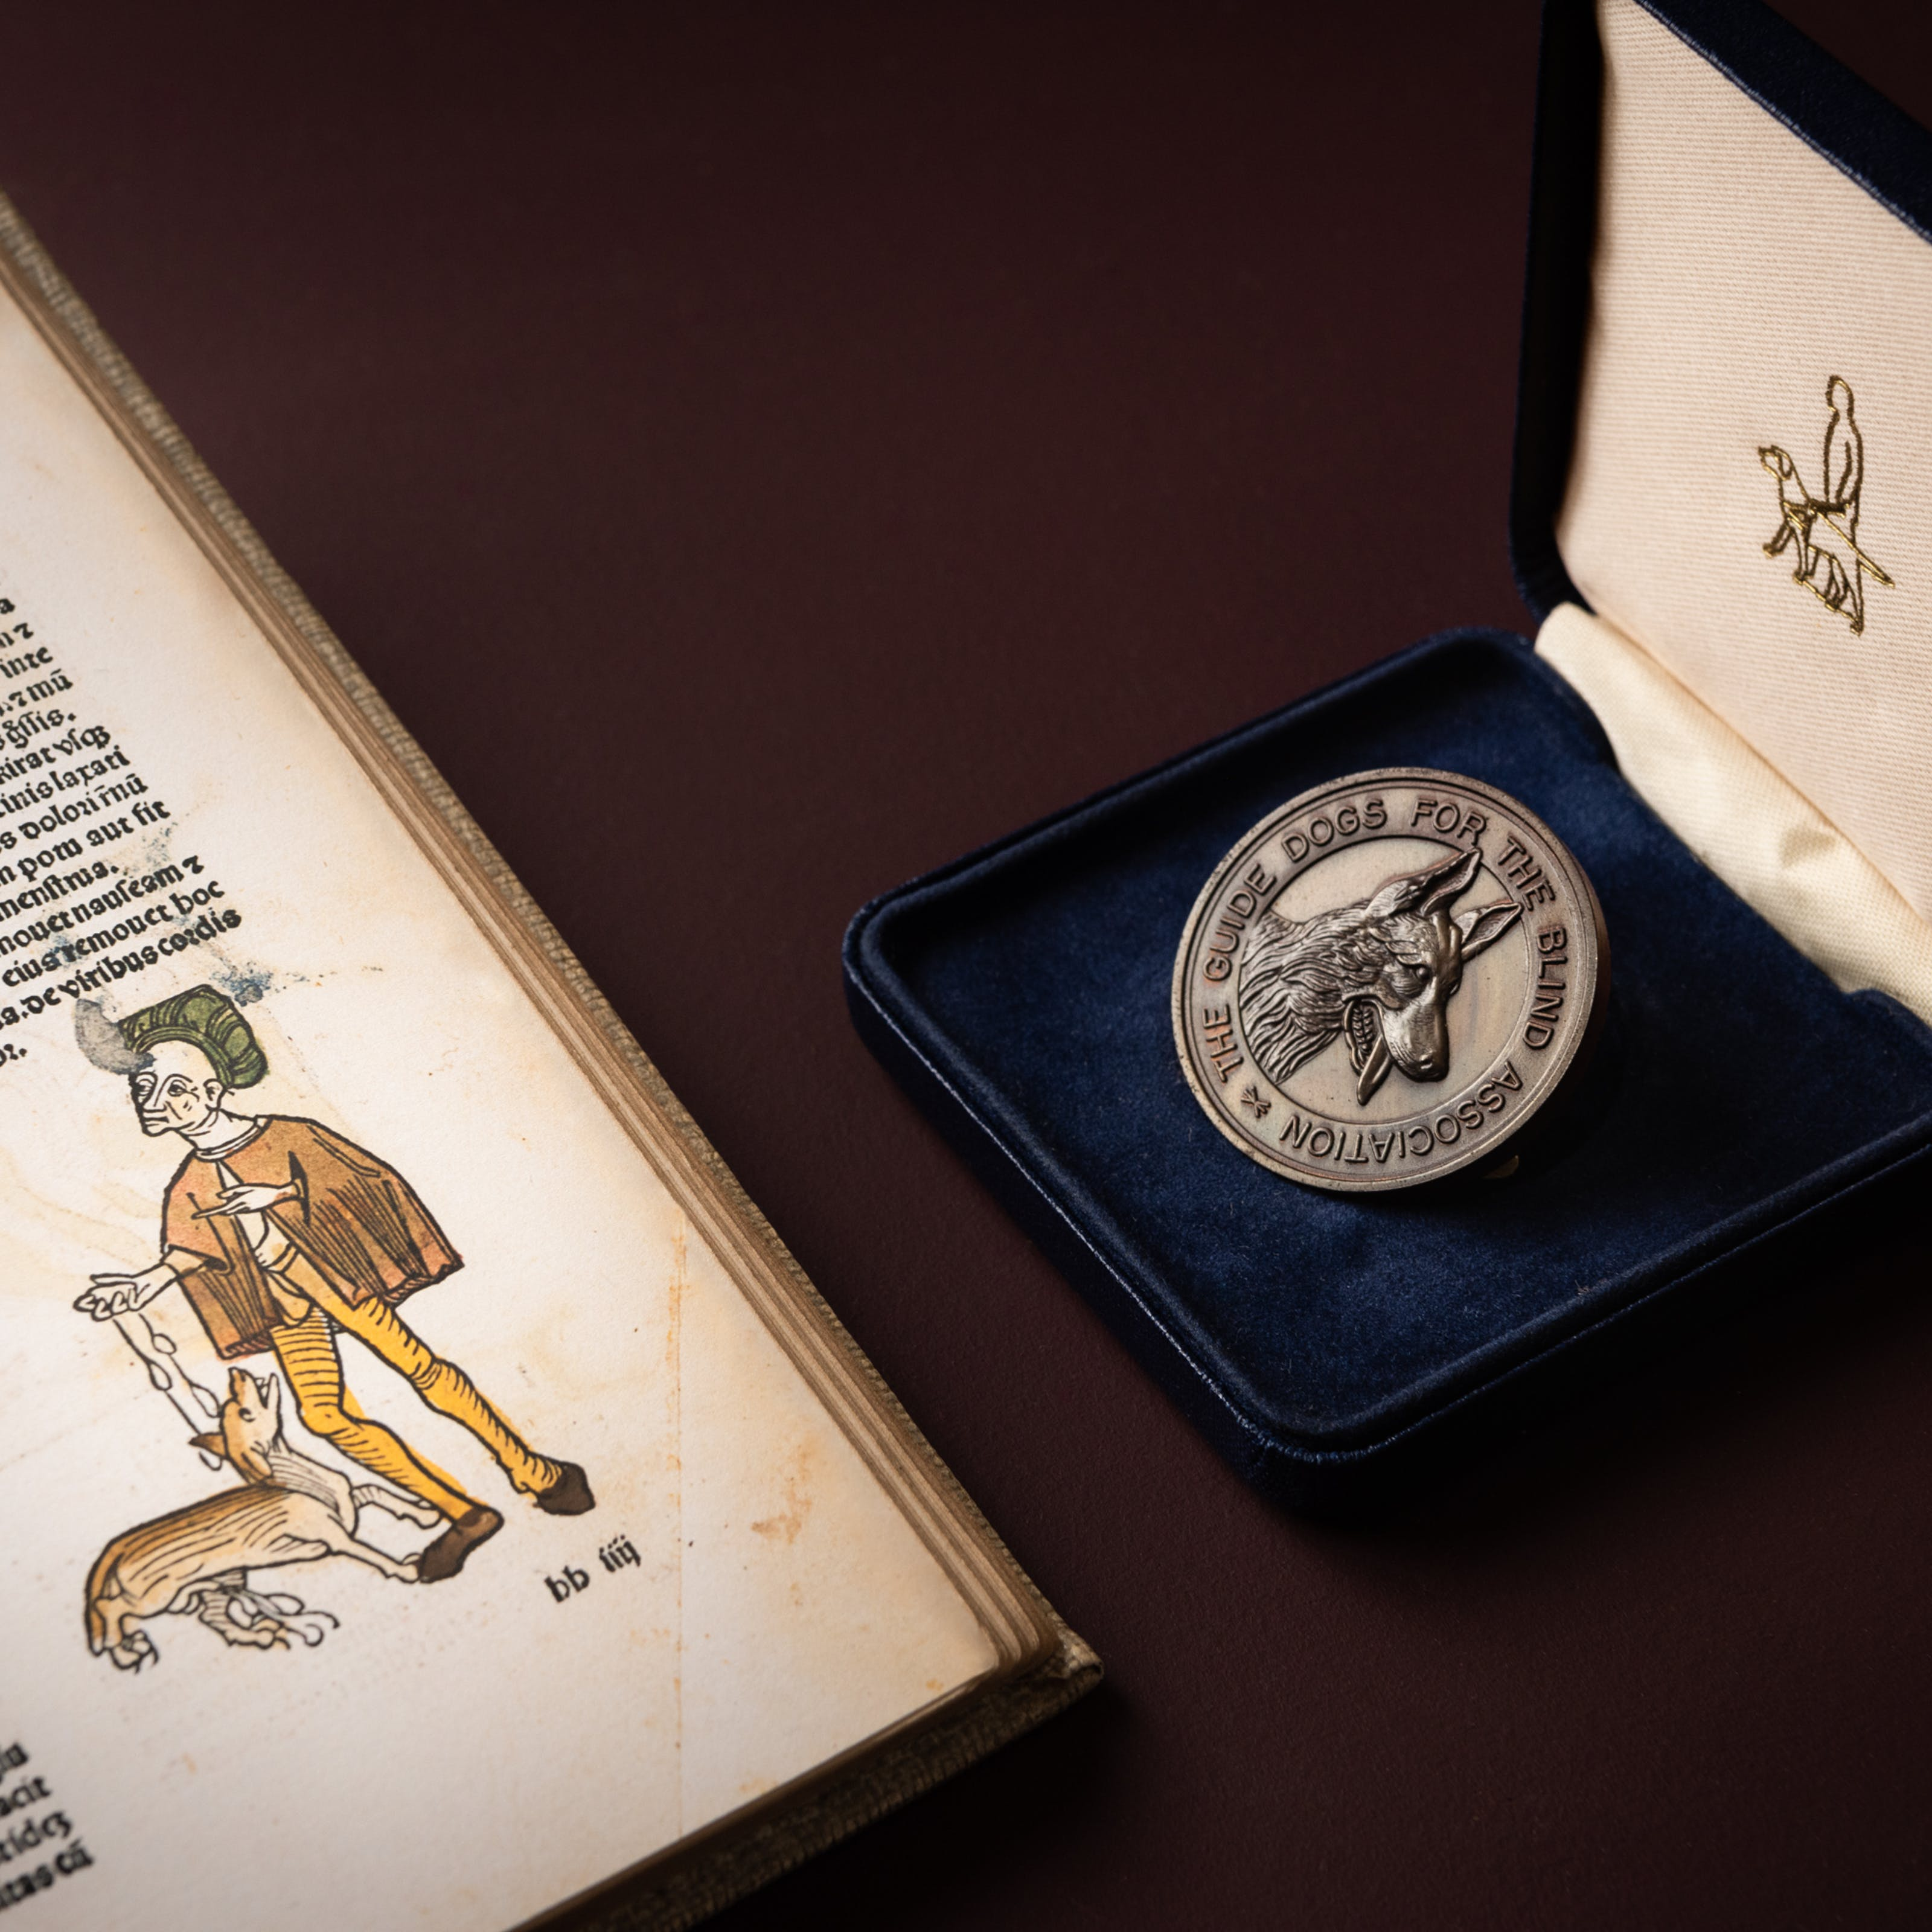 A photograph showing part of a medieval book on the left had-side of the image featuring Latin text and a figure of a man wearing a cape, tunic and a feathered hat. He is holding a dog on a lead, and the illustration is coloured green, brown and yellow.  On the right-hand side of the image is a medallion with The Guide Dogs For The Blind Association engraved around the outside, and an alsation dog's head engraved in the middle. The medallion is sitting in a royal blue box lined with blue velvet. The inside of the lid is lined with a cream coloured material on which the black outline of a guide dog and guide dog handler is stitched. The items appear on a plain brown background.